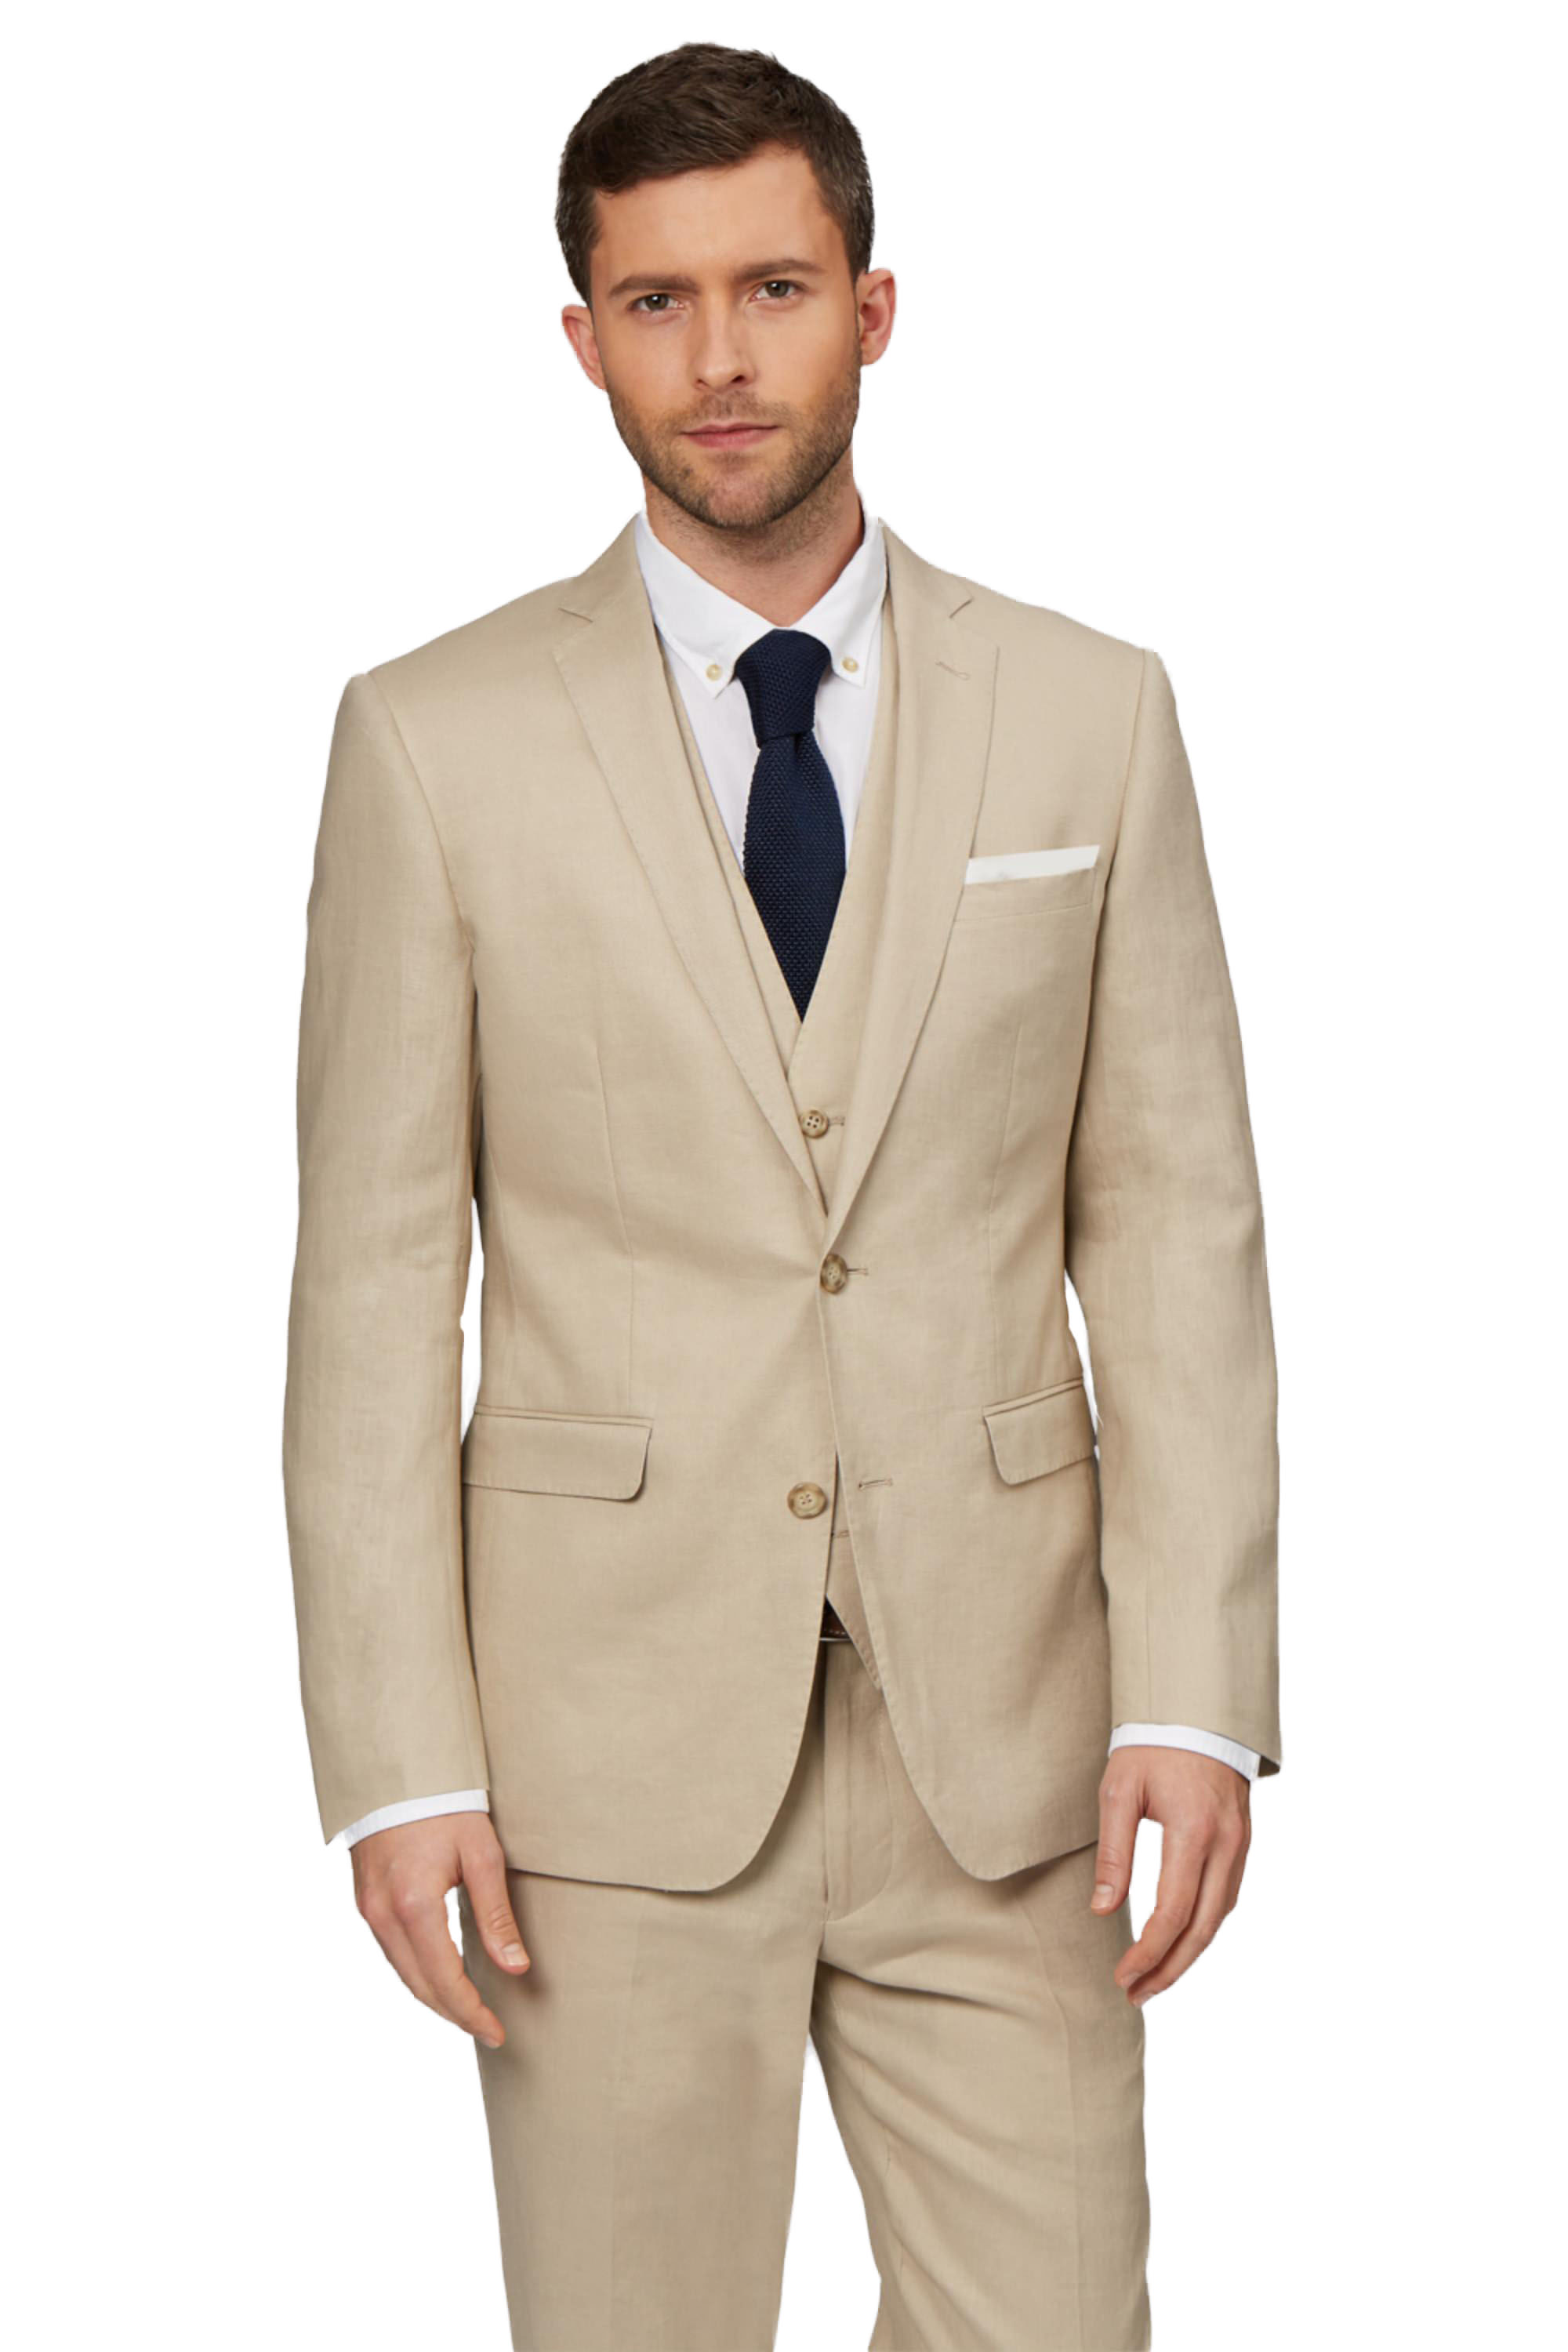 Shop online from our exclusive range of custom made men's linen suits! Get your custom suit online today from StudioSuits! Worldwide shipping available! Shop today!